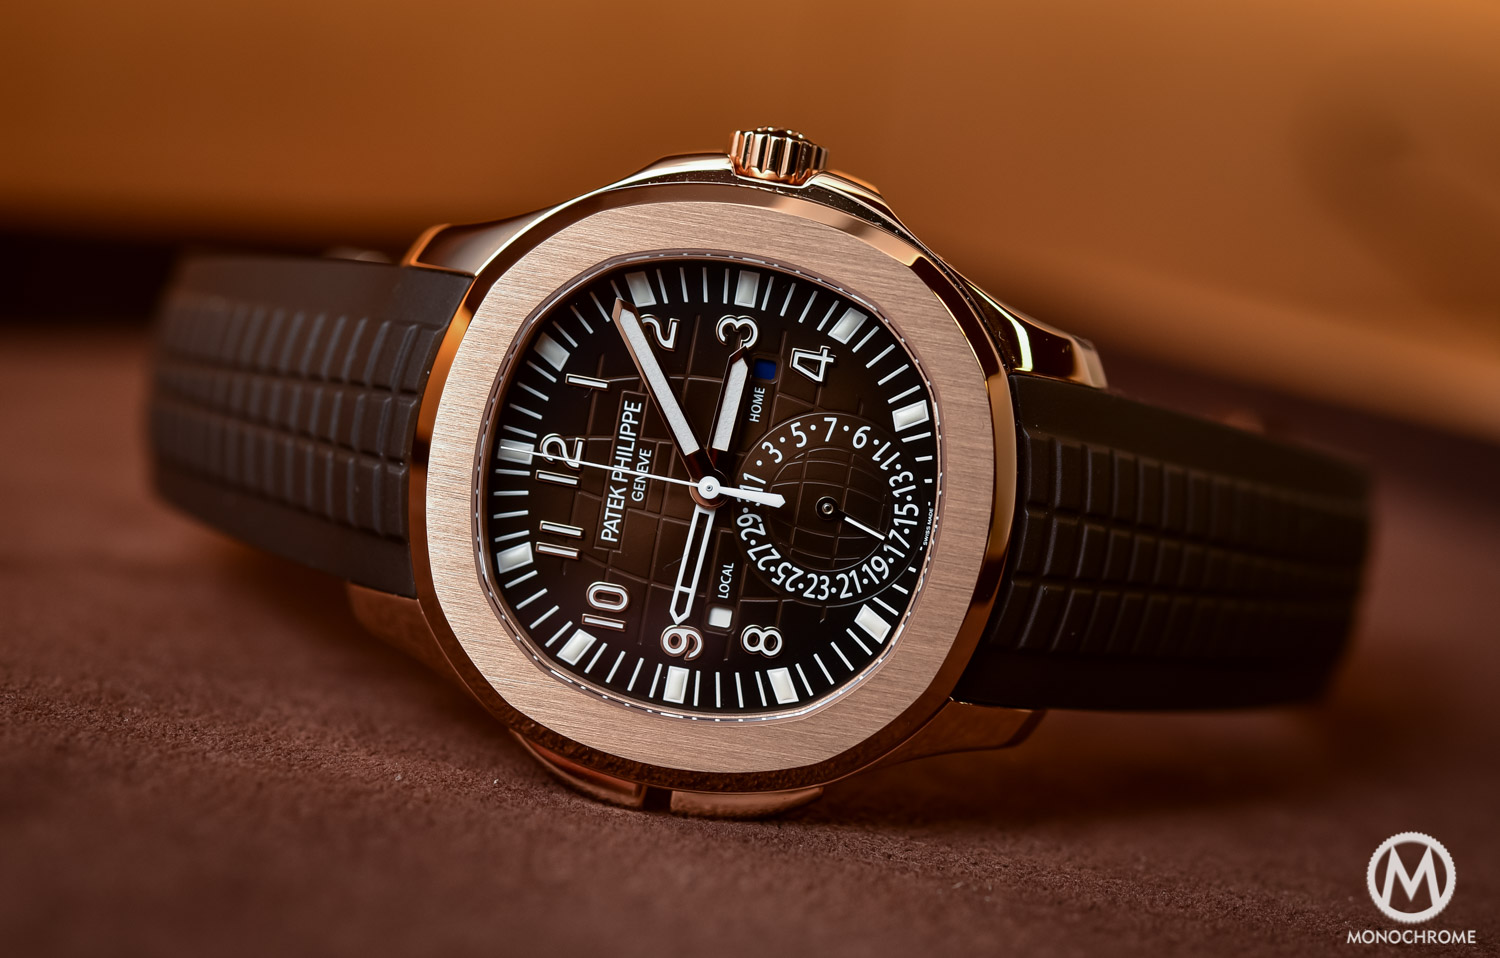 Top 5 Watches from Baselworld 2016 - Patek Philippe Aquanaut ref. 5164R - 1